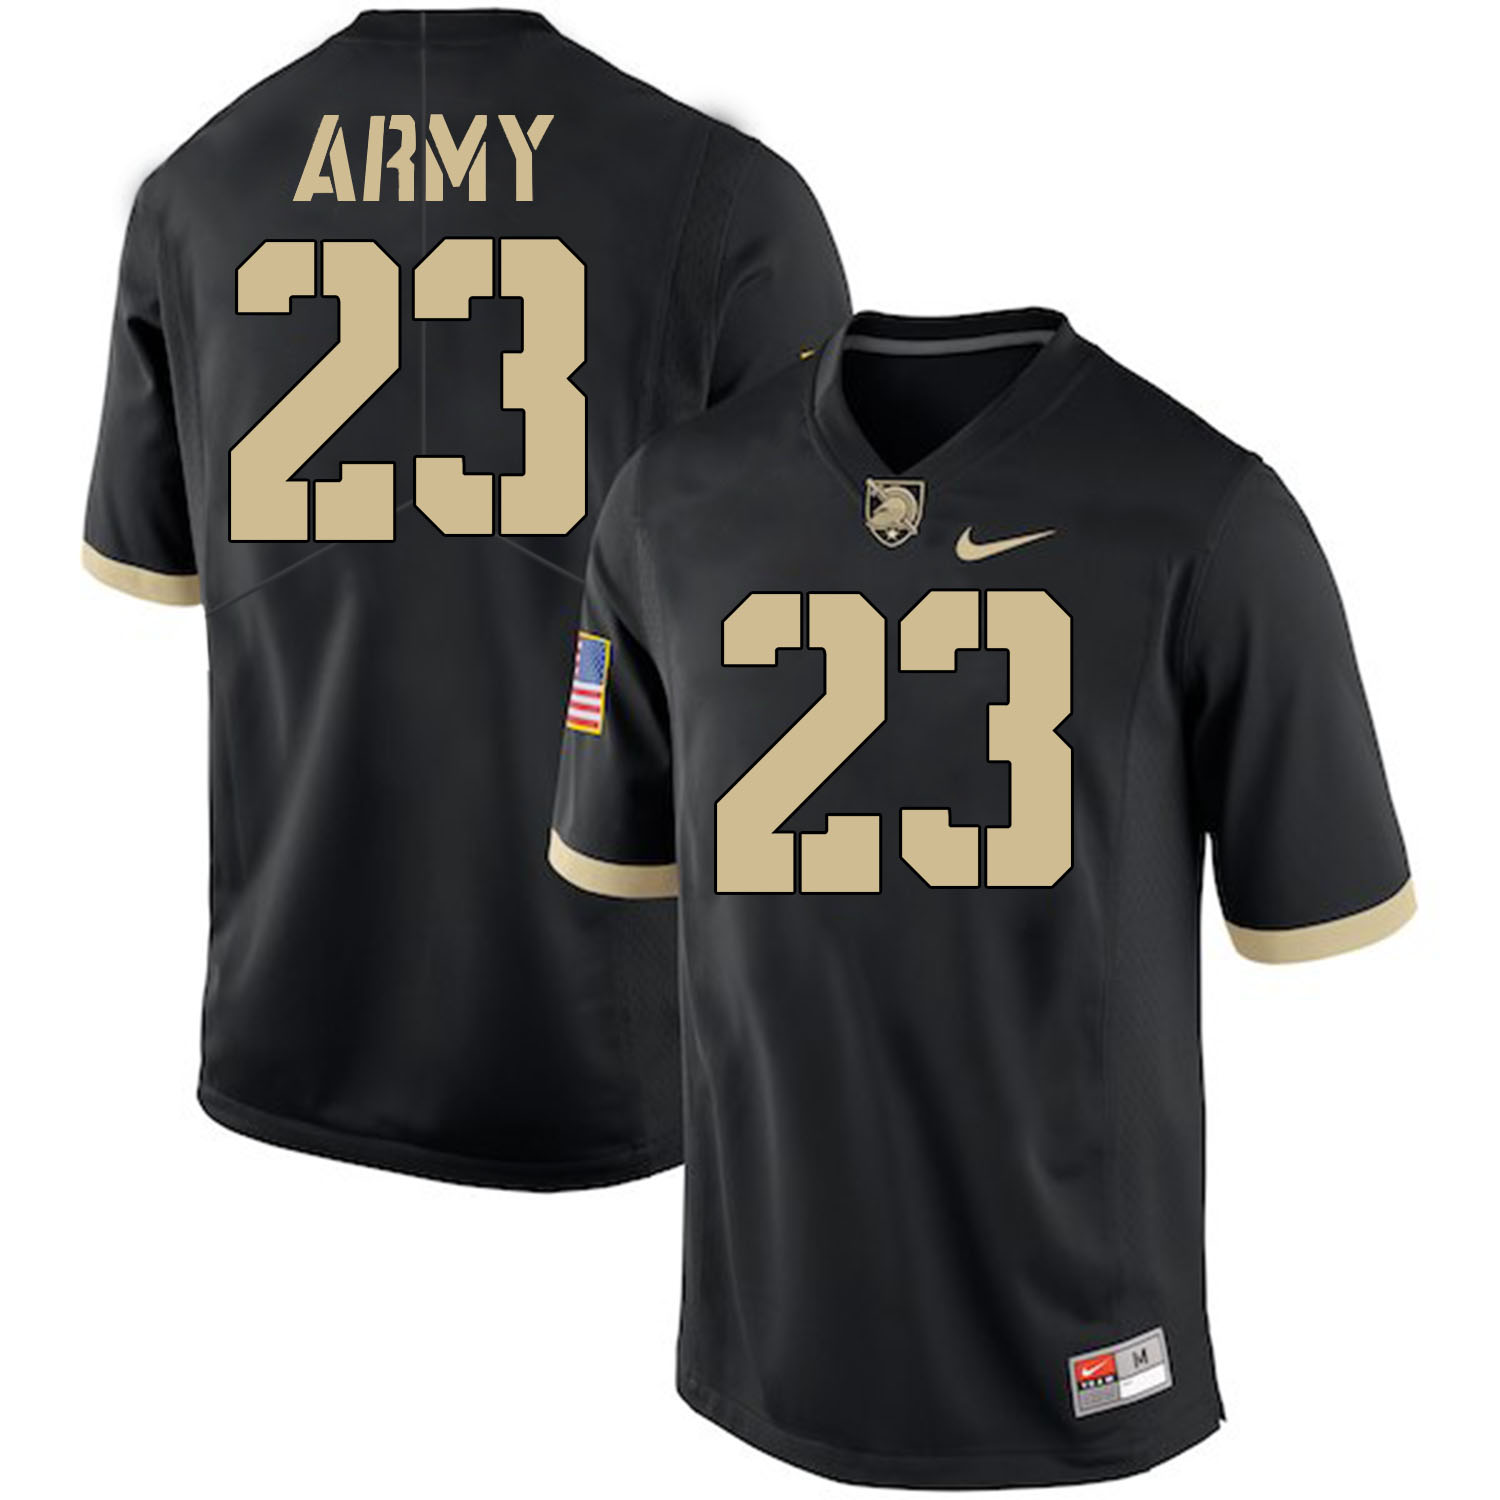 Army Black Knights 23 Elijah Riley Black College Football Jersey